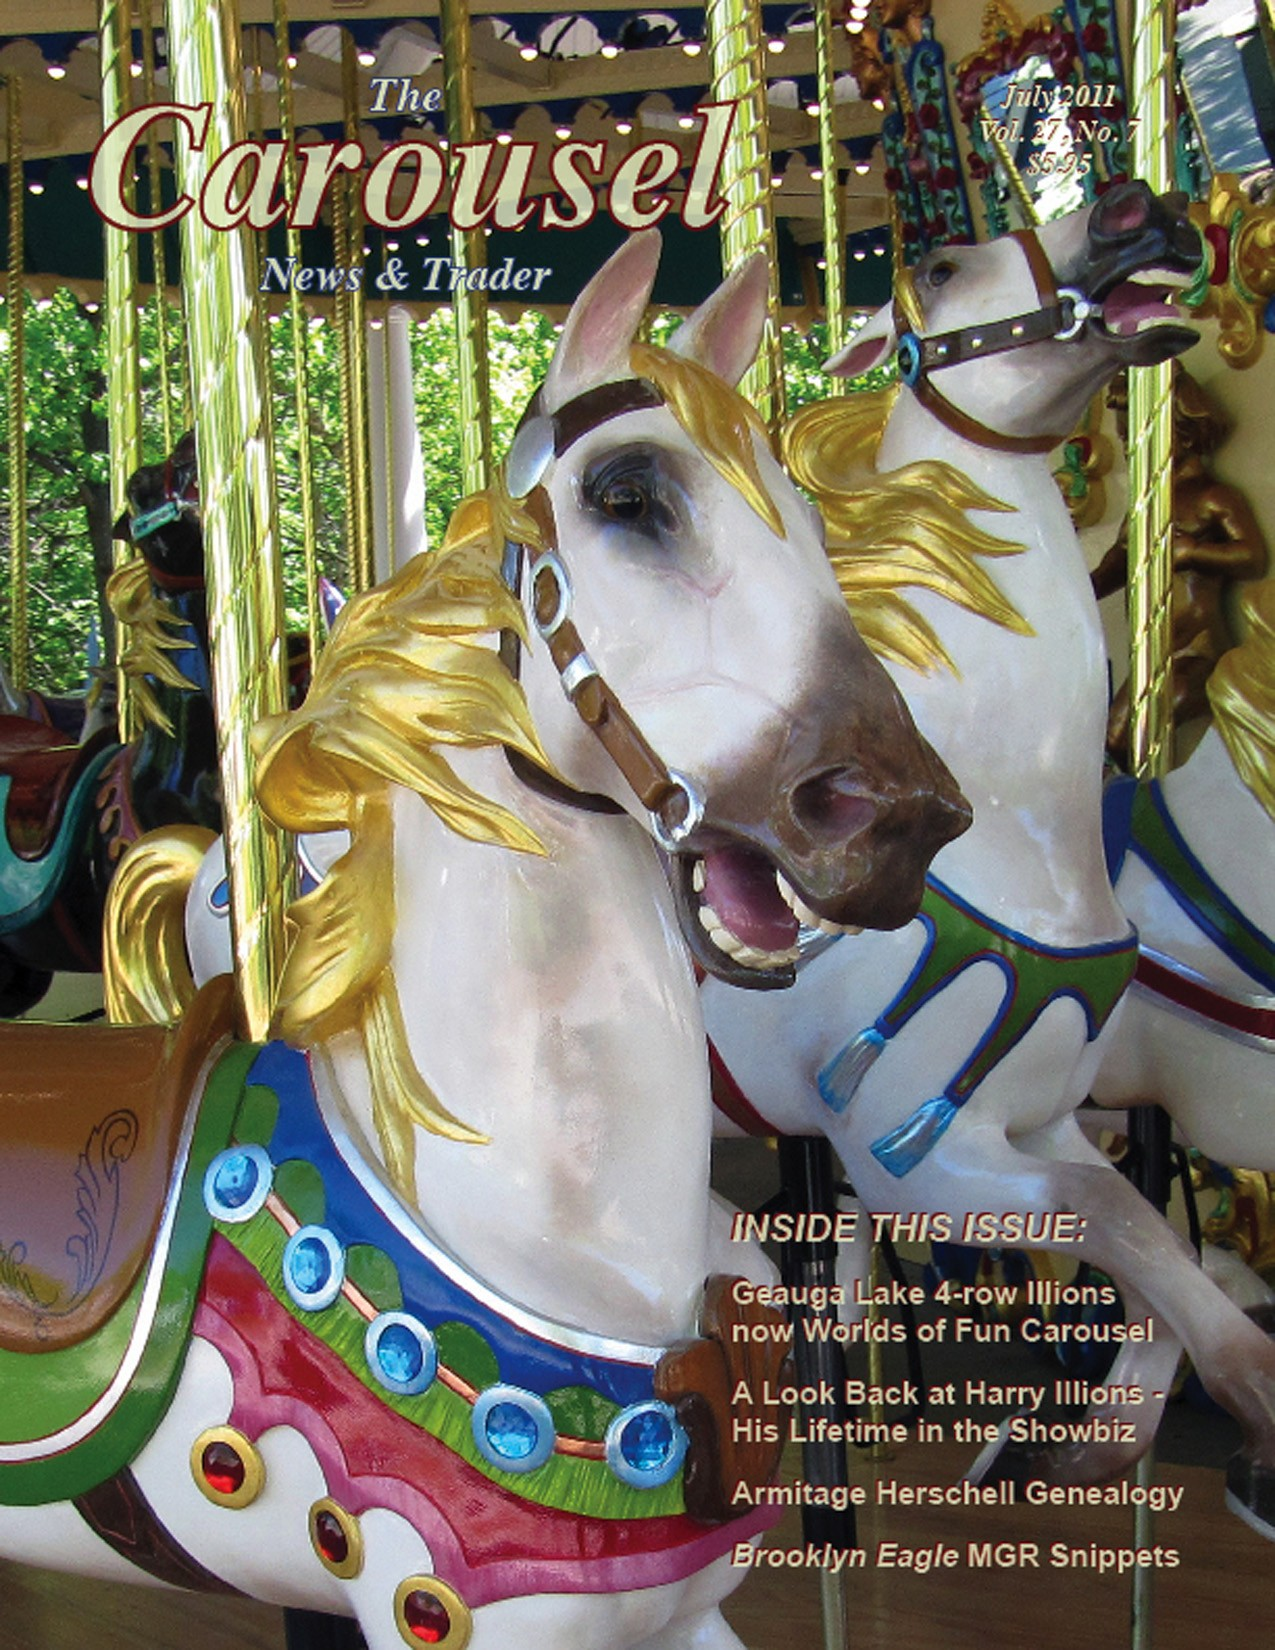 Carousel-news-cover-7-Worlds-of-Fun-Illions-carousel-Kansas-City-July-2011